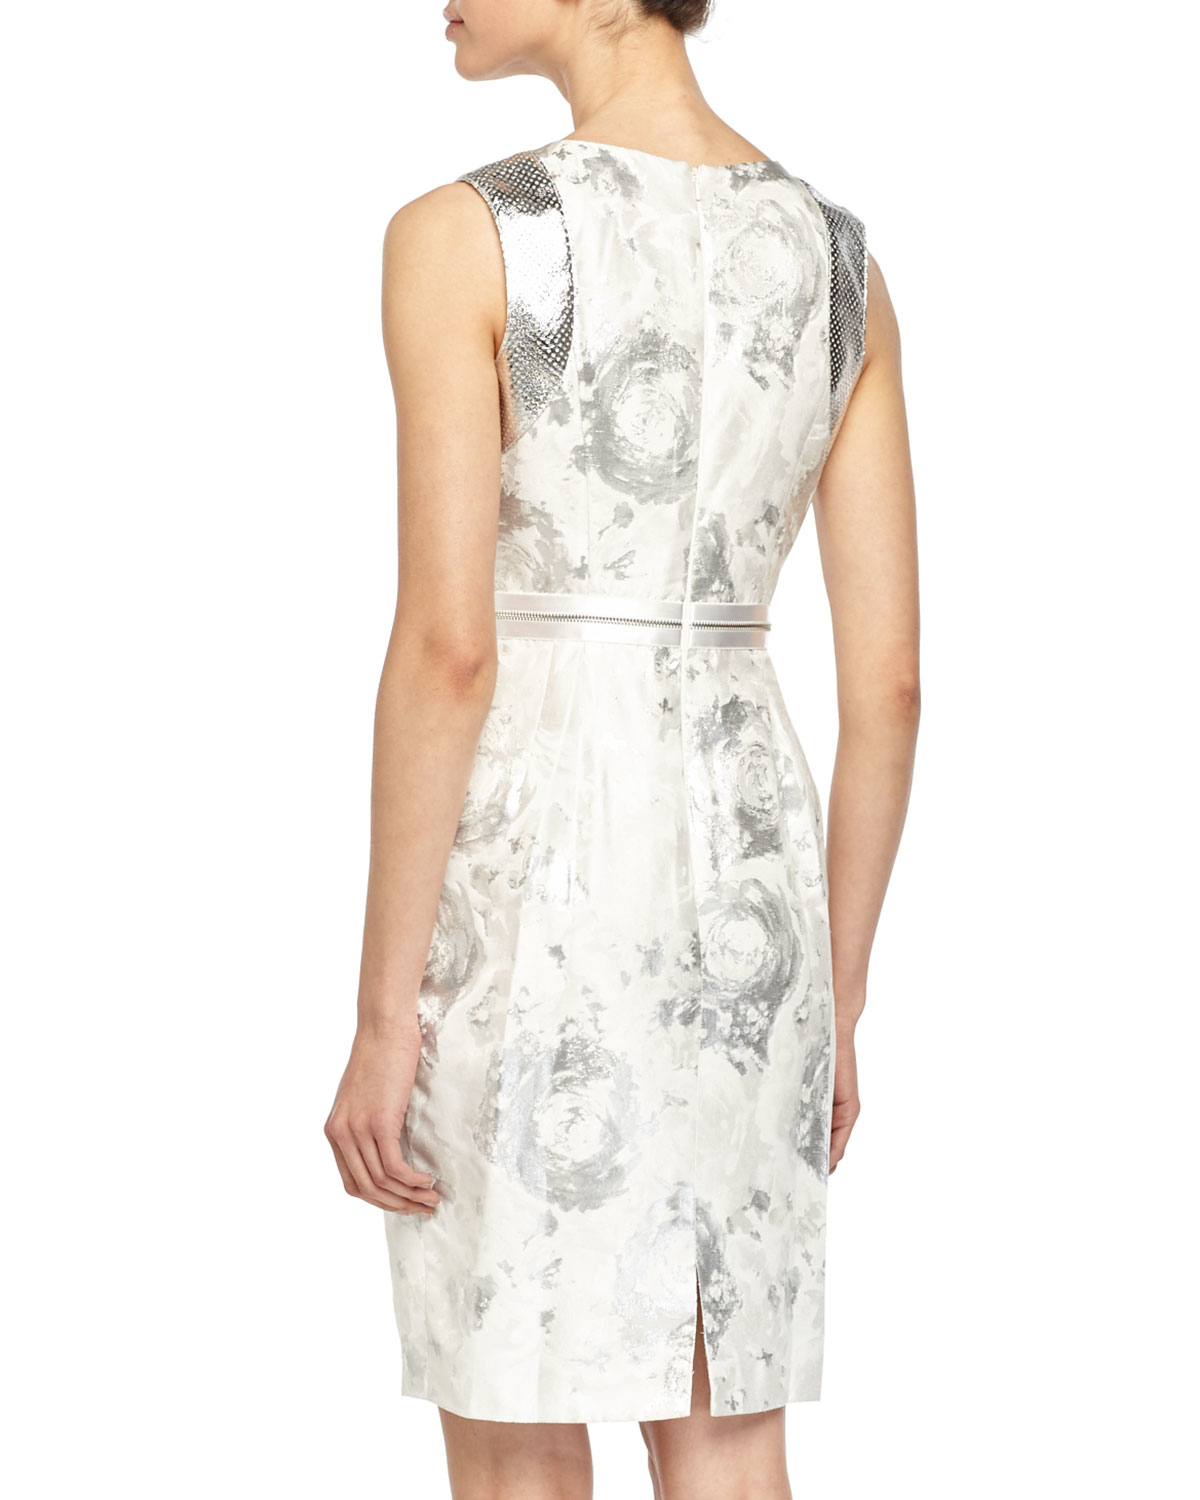 81abc47dbf Lyst - Carmen Marc Valvo Sleeveless Beaded-top Floral Cocktail Dress ...